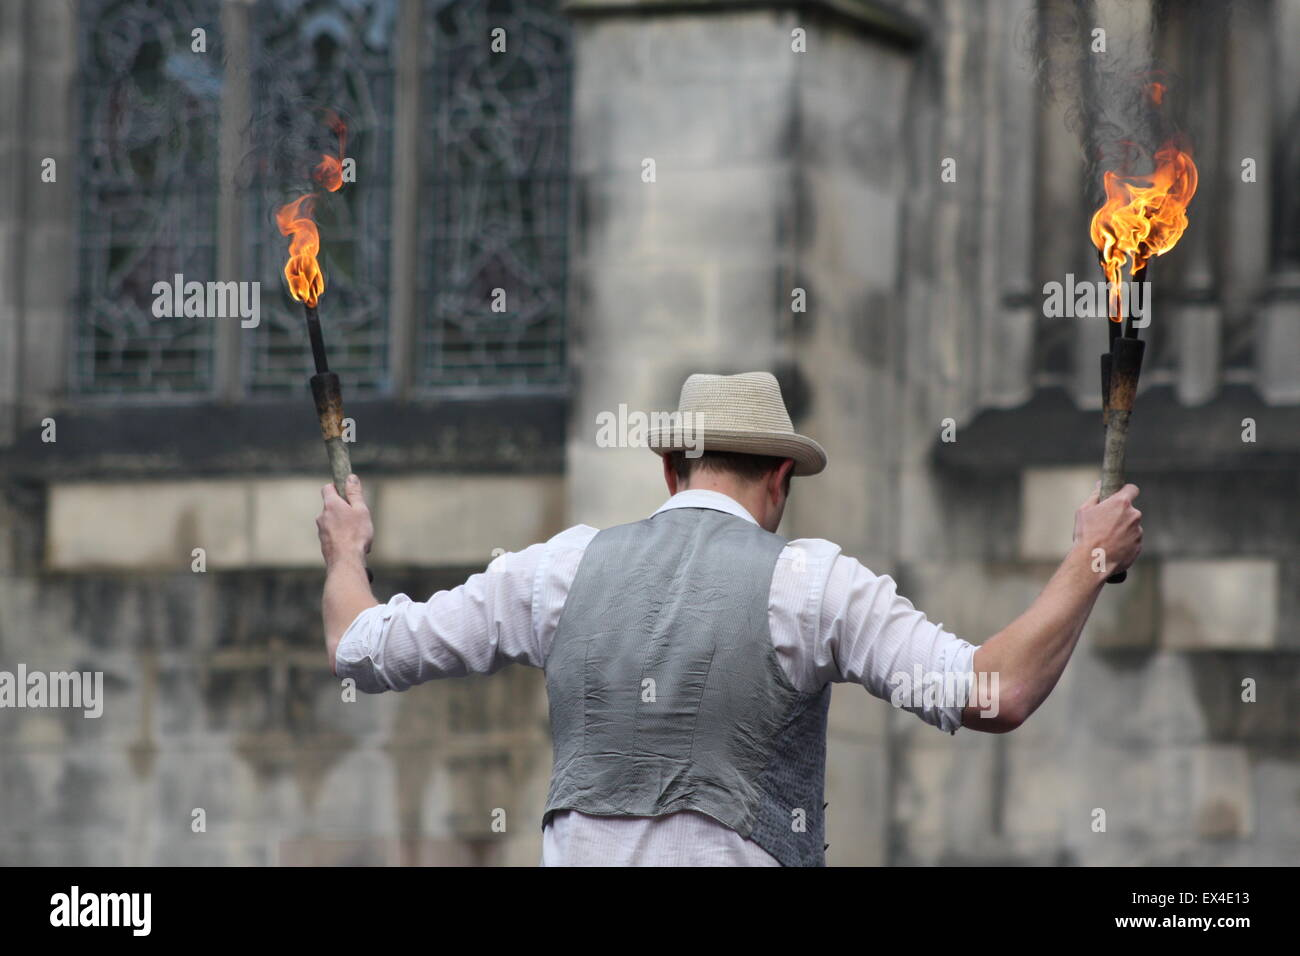 A street performer entertains a crowd at the Edinburgh Festival, August 2014. - Stock Image